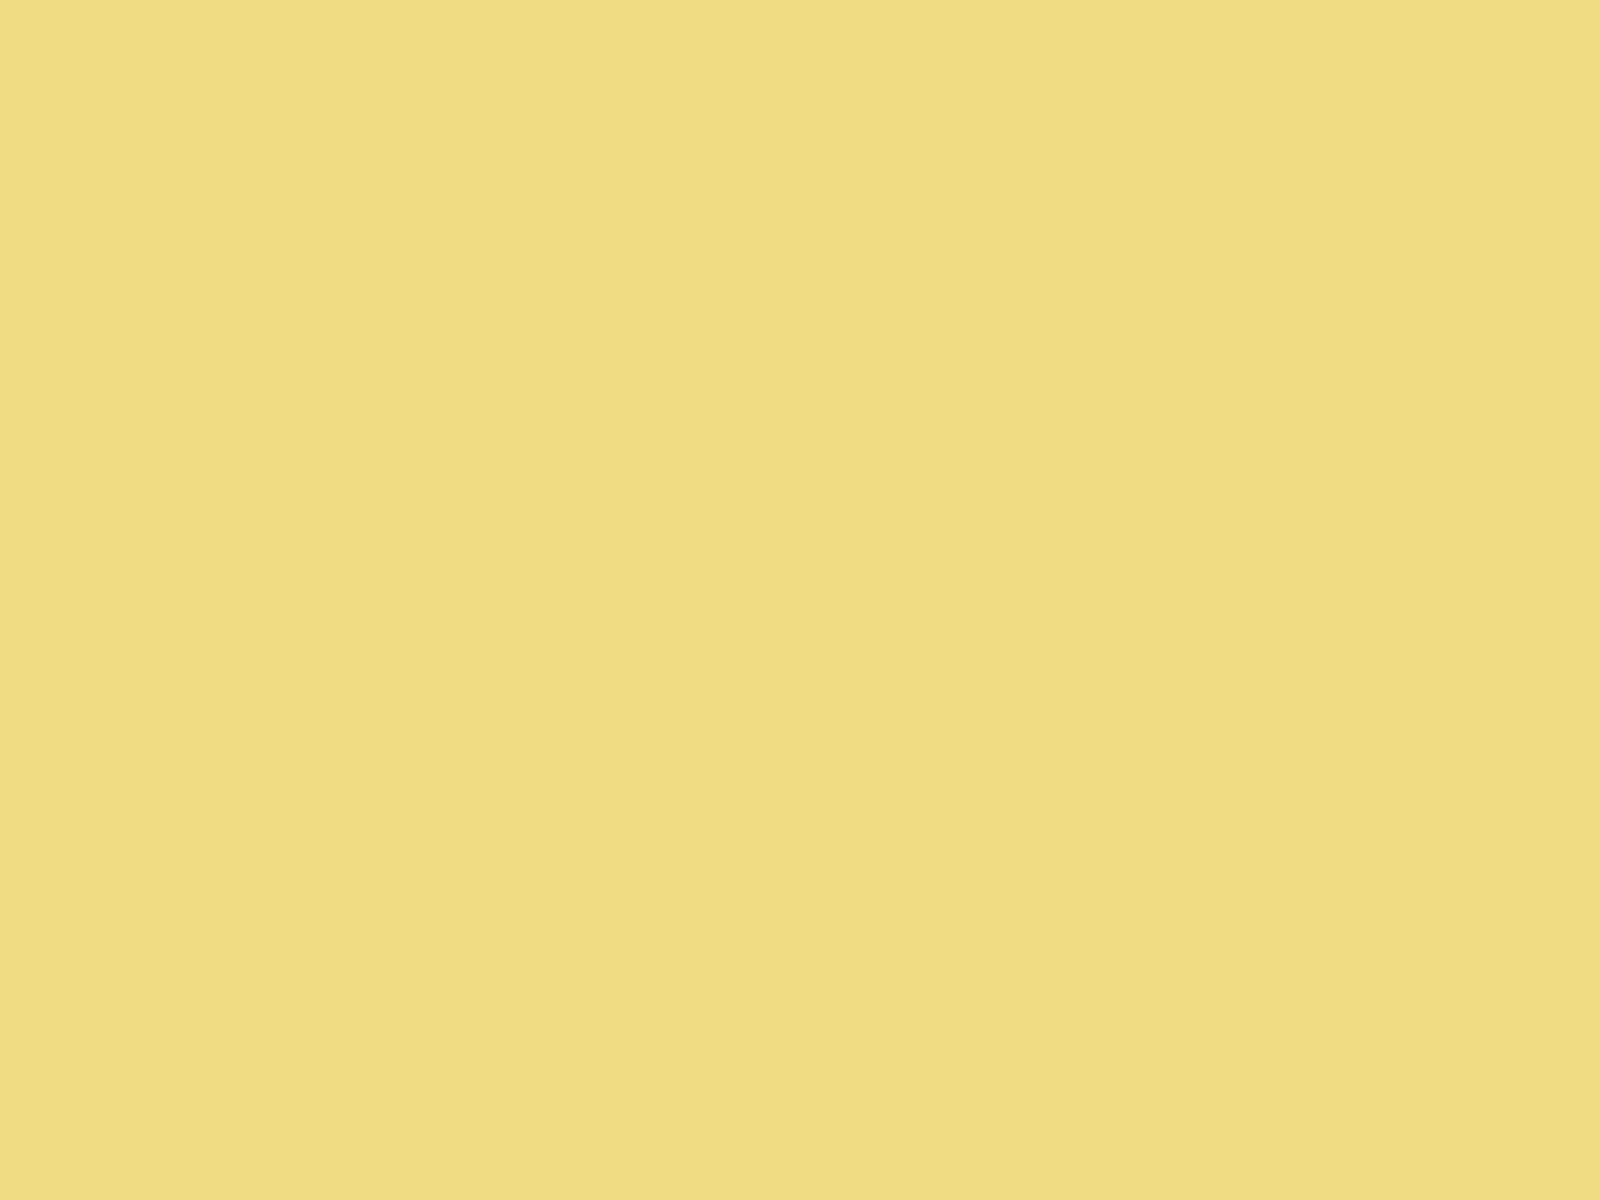 1600x1200 Buff Solid Color Background